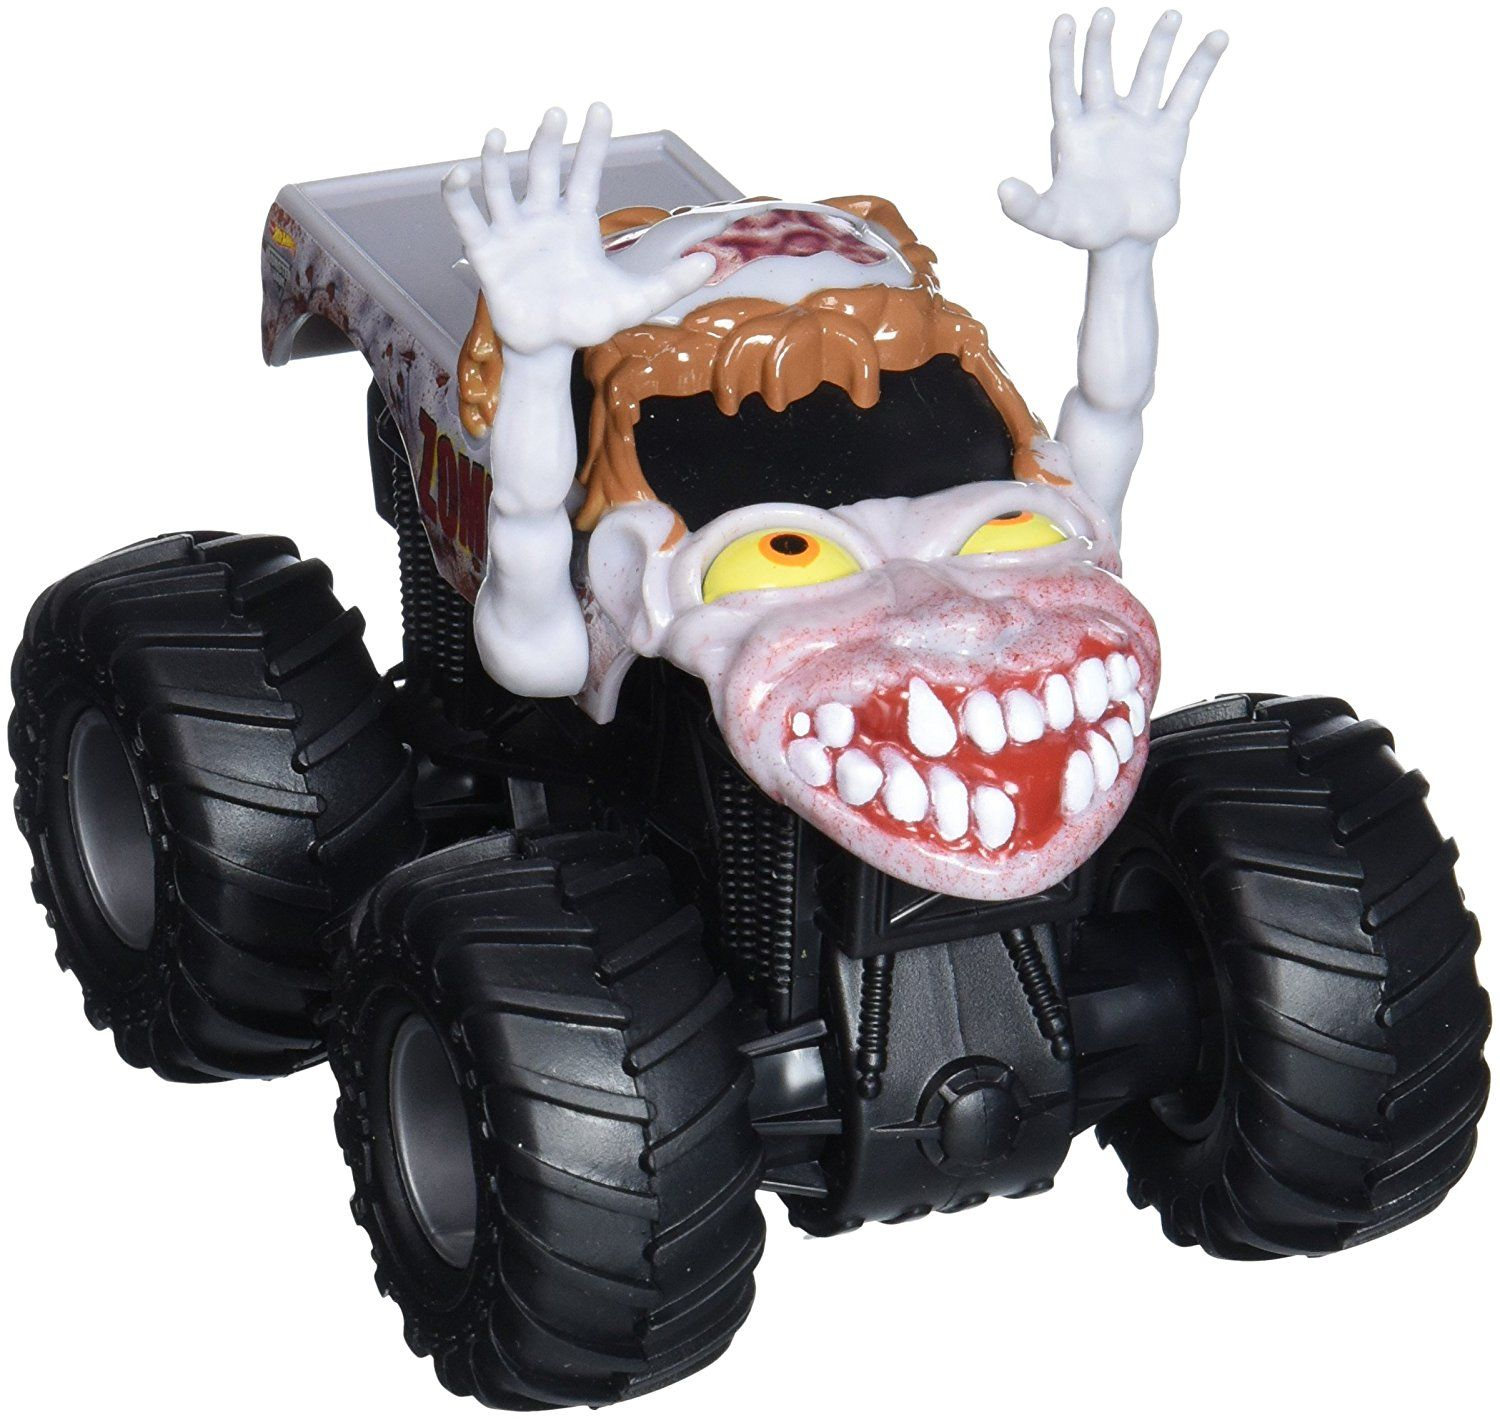 Amazon Com Hot Wheels Monster Jam Rev Tredz Zombie Vehicle 1 43 Scale Toys Games Hot Wheels Monster Jam Zombie Vehicle Hot Wheels